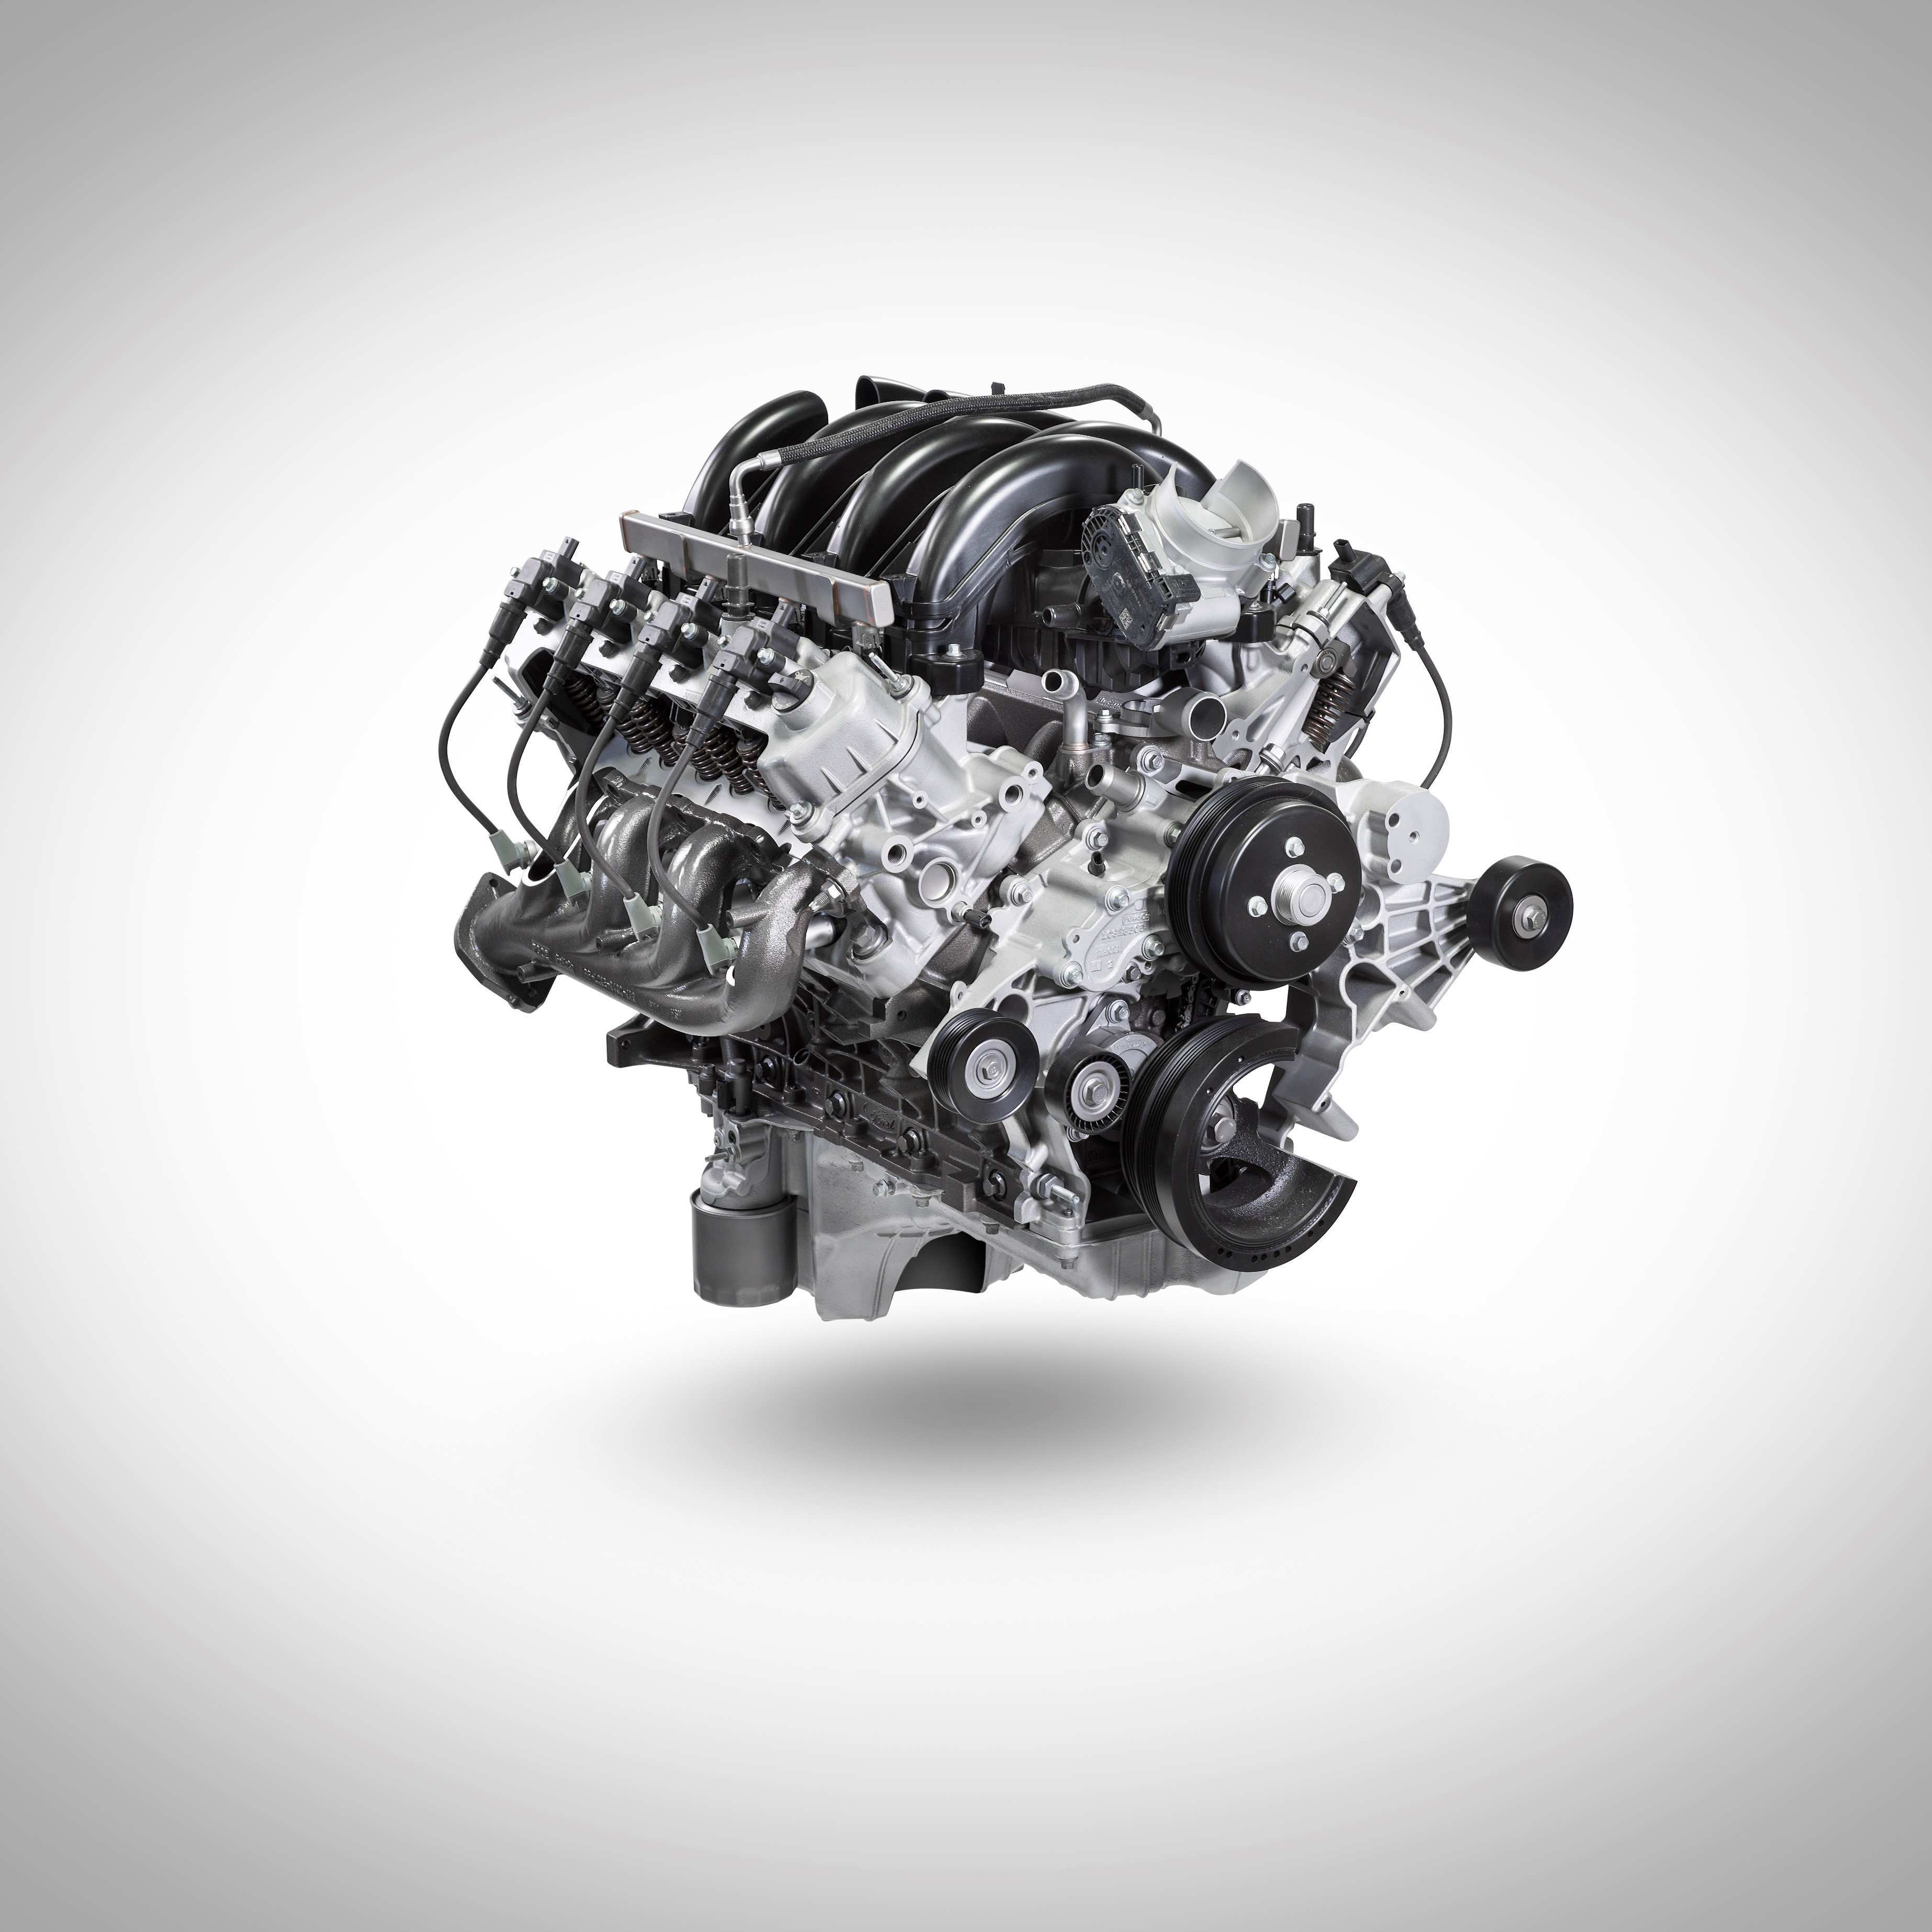 62 Great Ford V8 2020 Release Date with Ford V8 2020